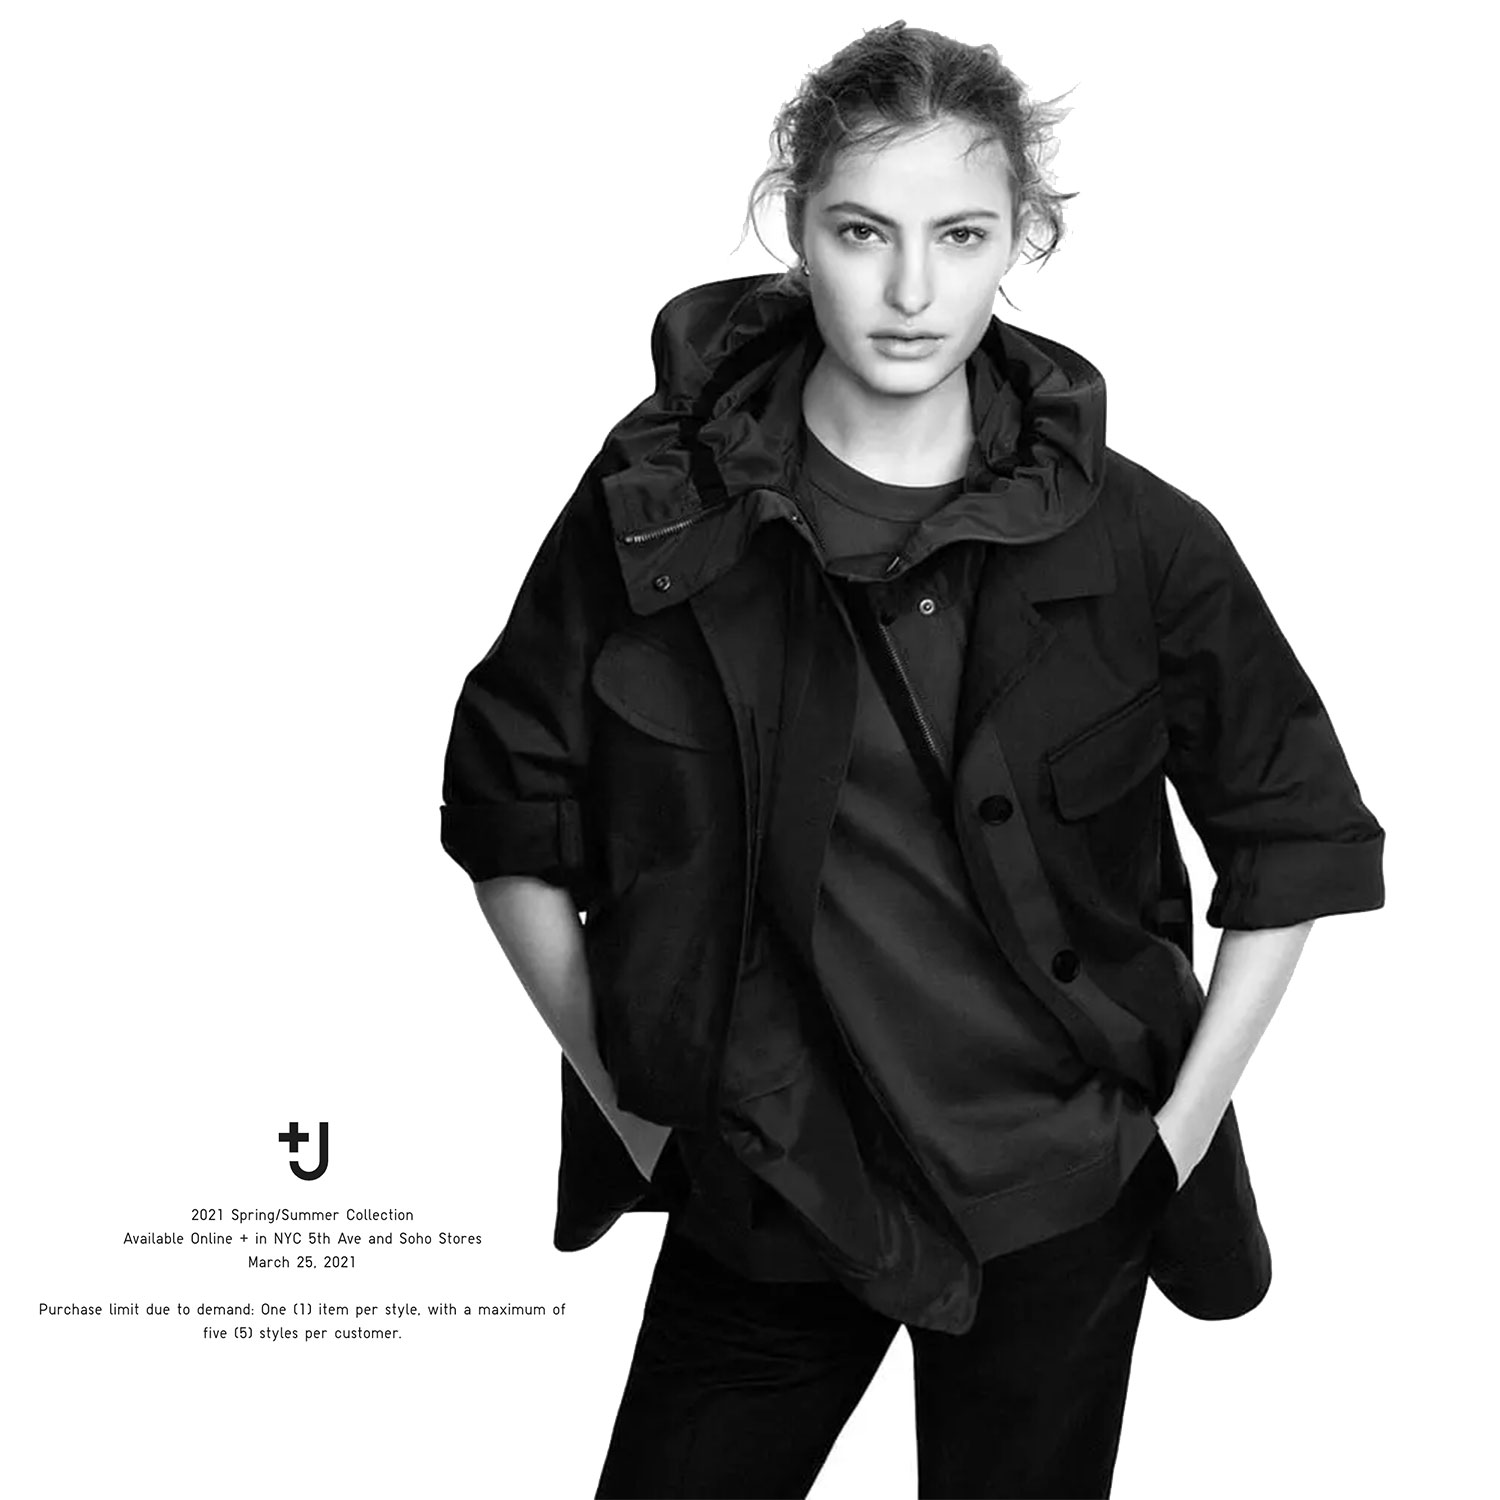 THE JIL SANDER + UNIQLO SUMMER COLLECTION